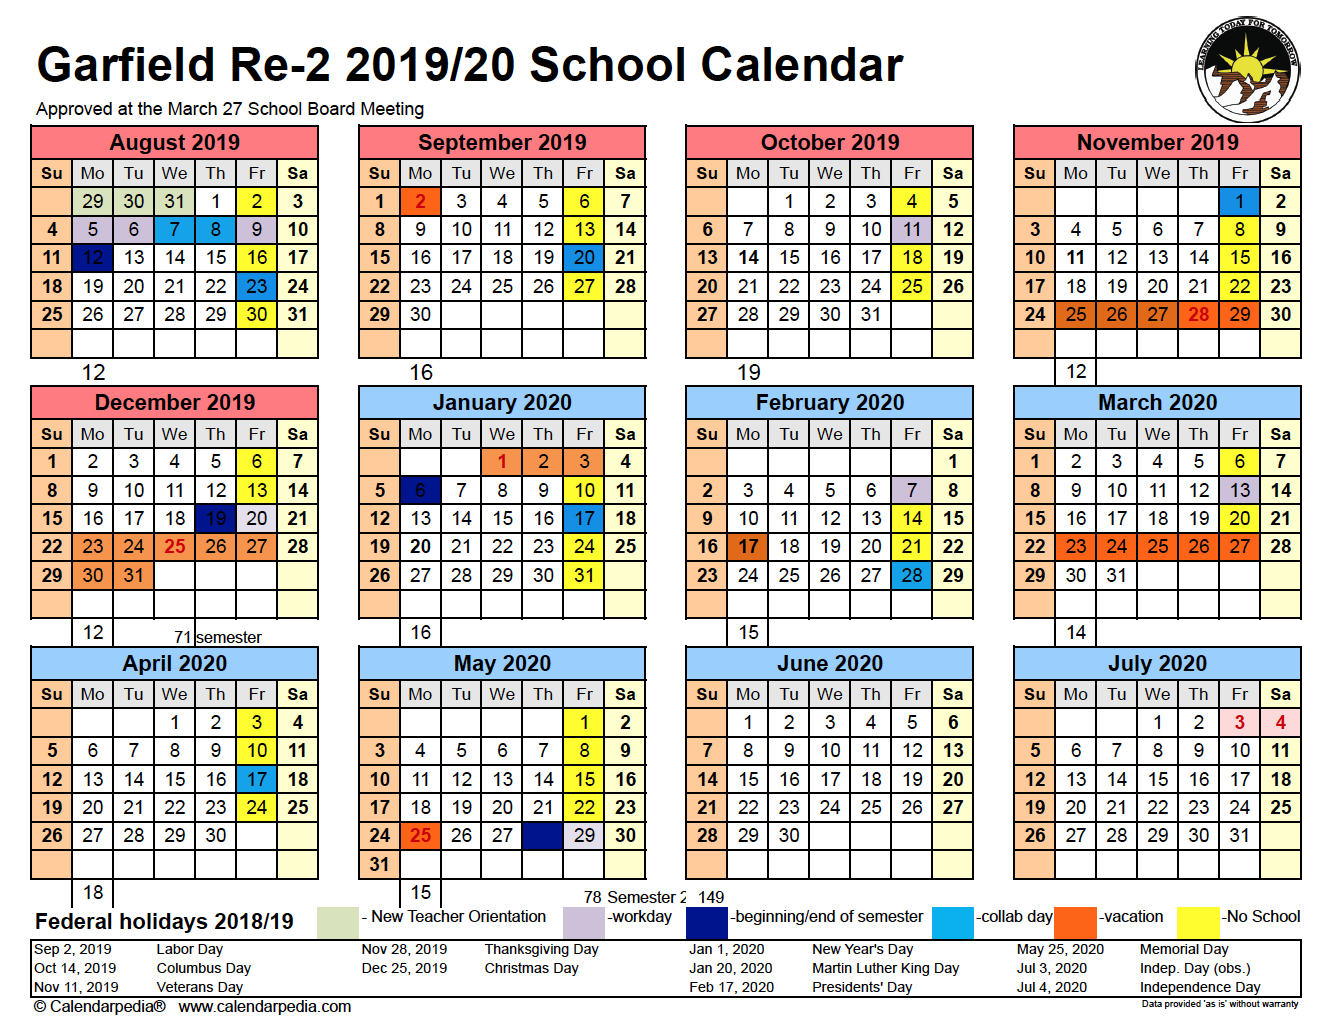 Draft 3 inside Calander 2020 We Does The School Close